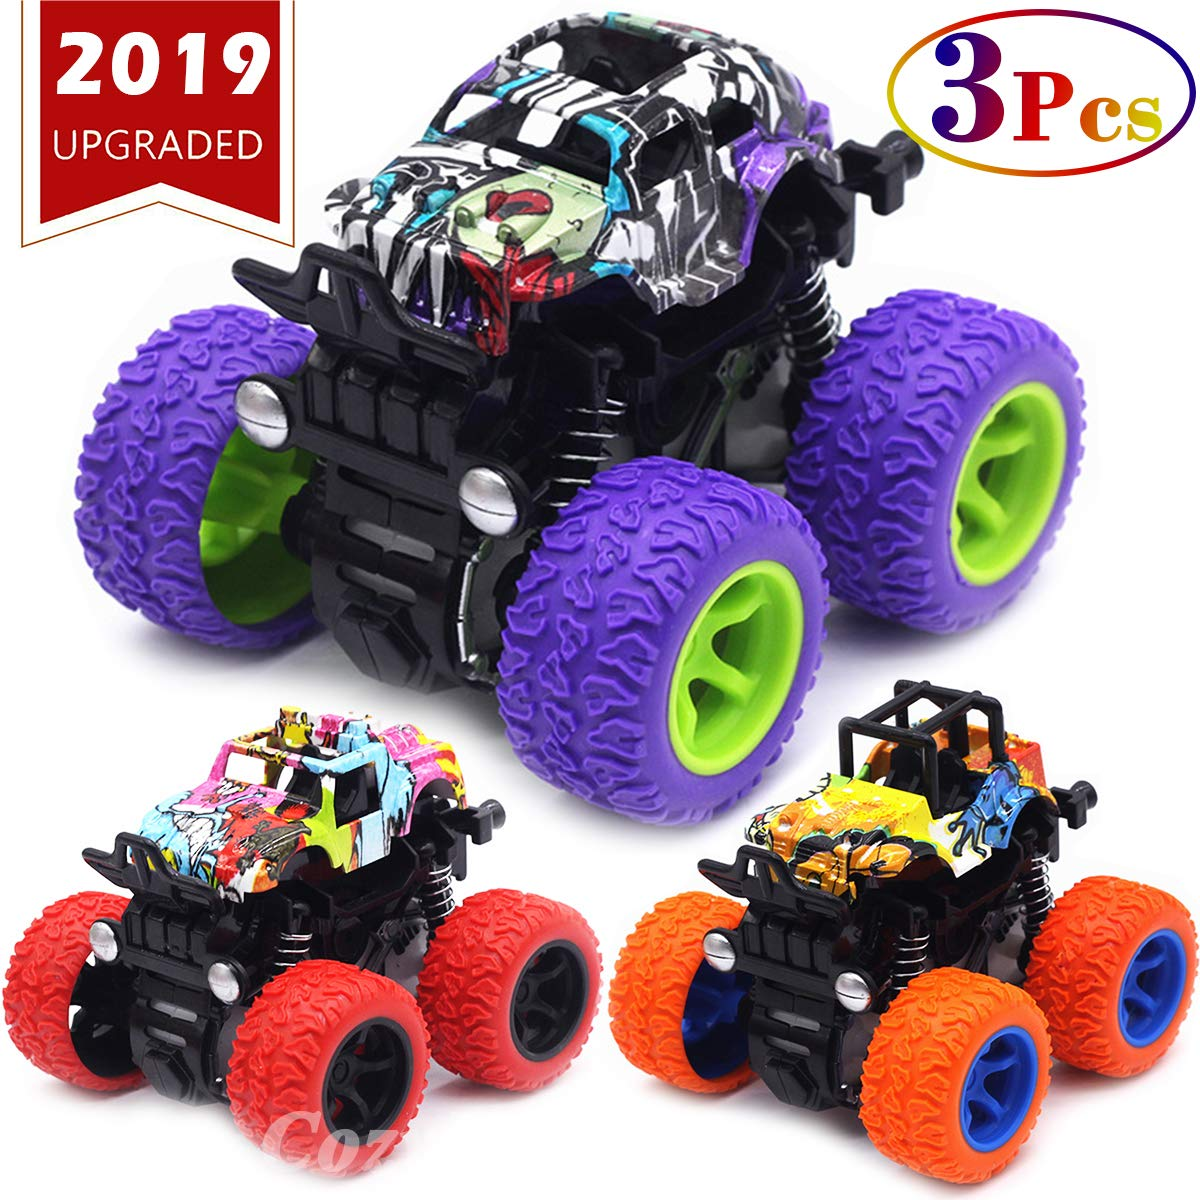 Monster Trucks Toys for Boys - Friction Powered 3-Pack Mini Push and Go Car Truck Jam Playset for Boys Girls Toddler Aged 2 3 4 5 Year Old Gifts for Kids Birthday (Purple, Red, Orange, 3-Pack) by CozyBomB